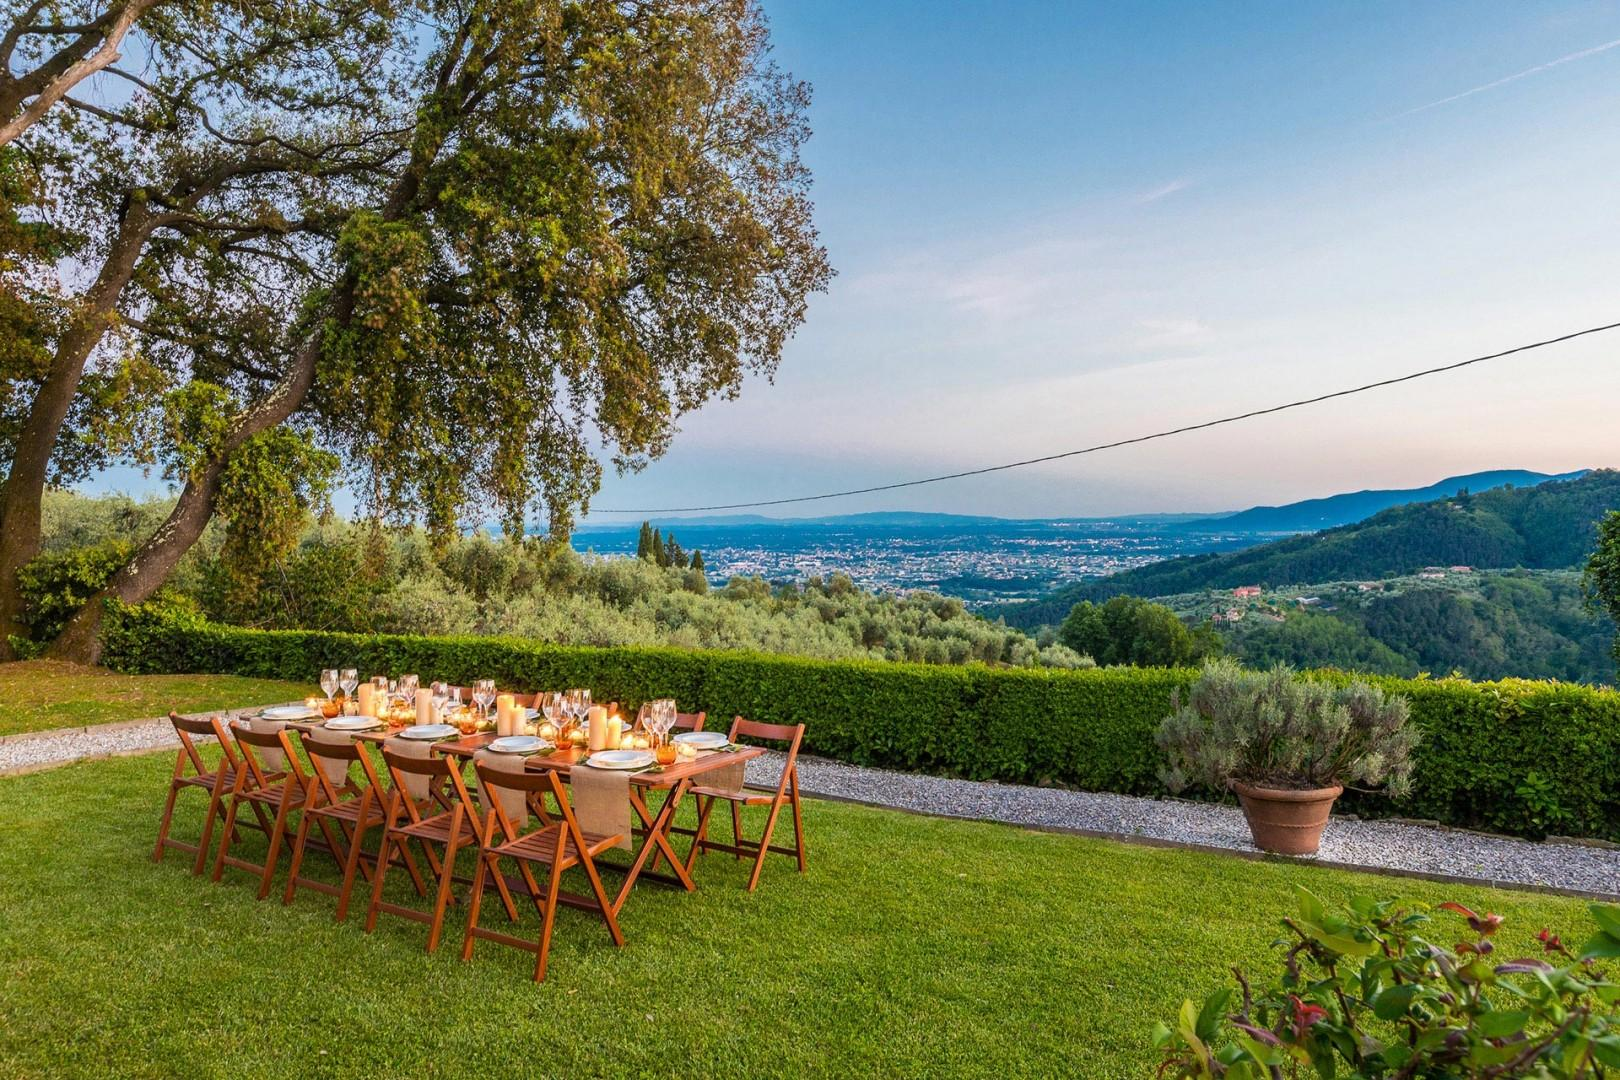 Gather around the table on the terrace behind the house with views of Montecatini in the background.